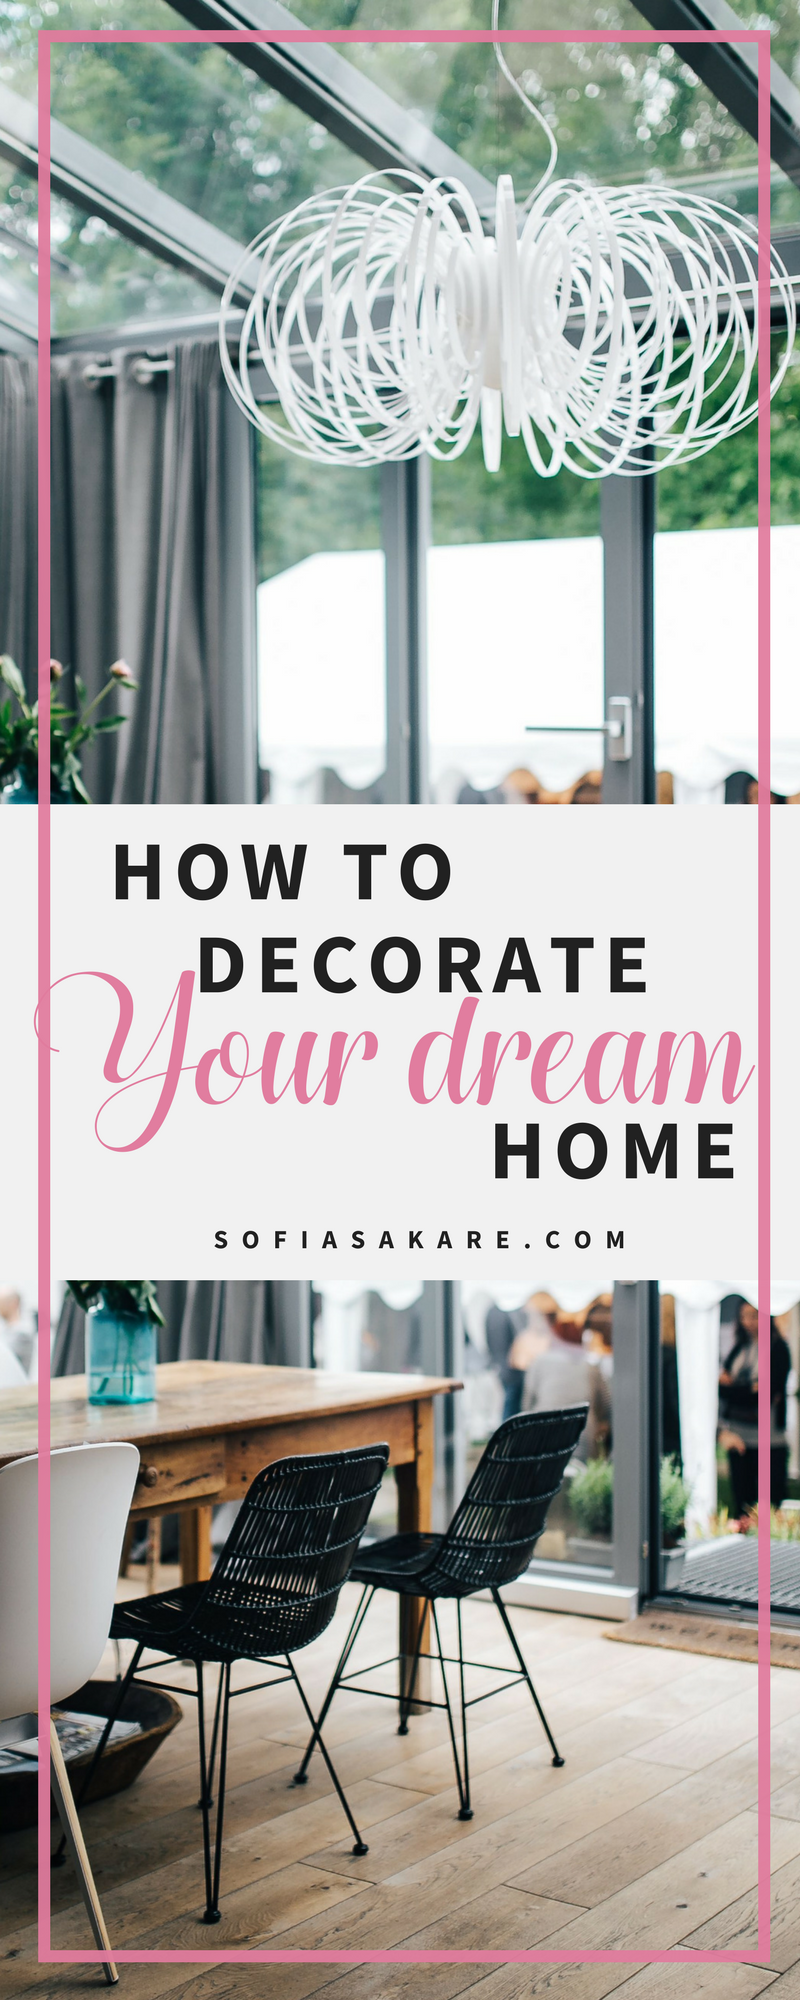 Step-by-step Guide How to Decorate Your Home